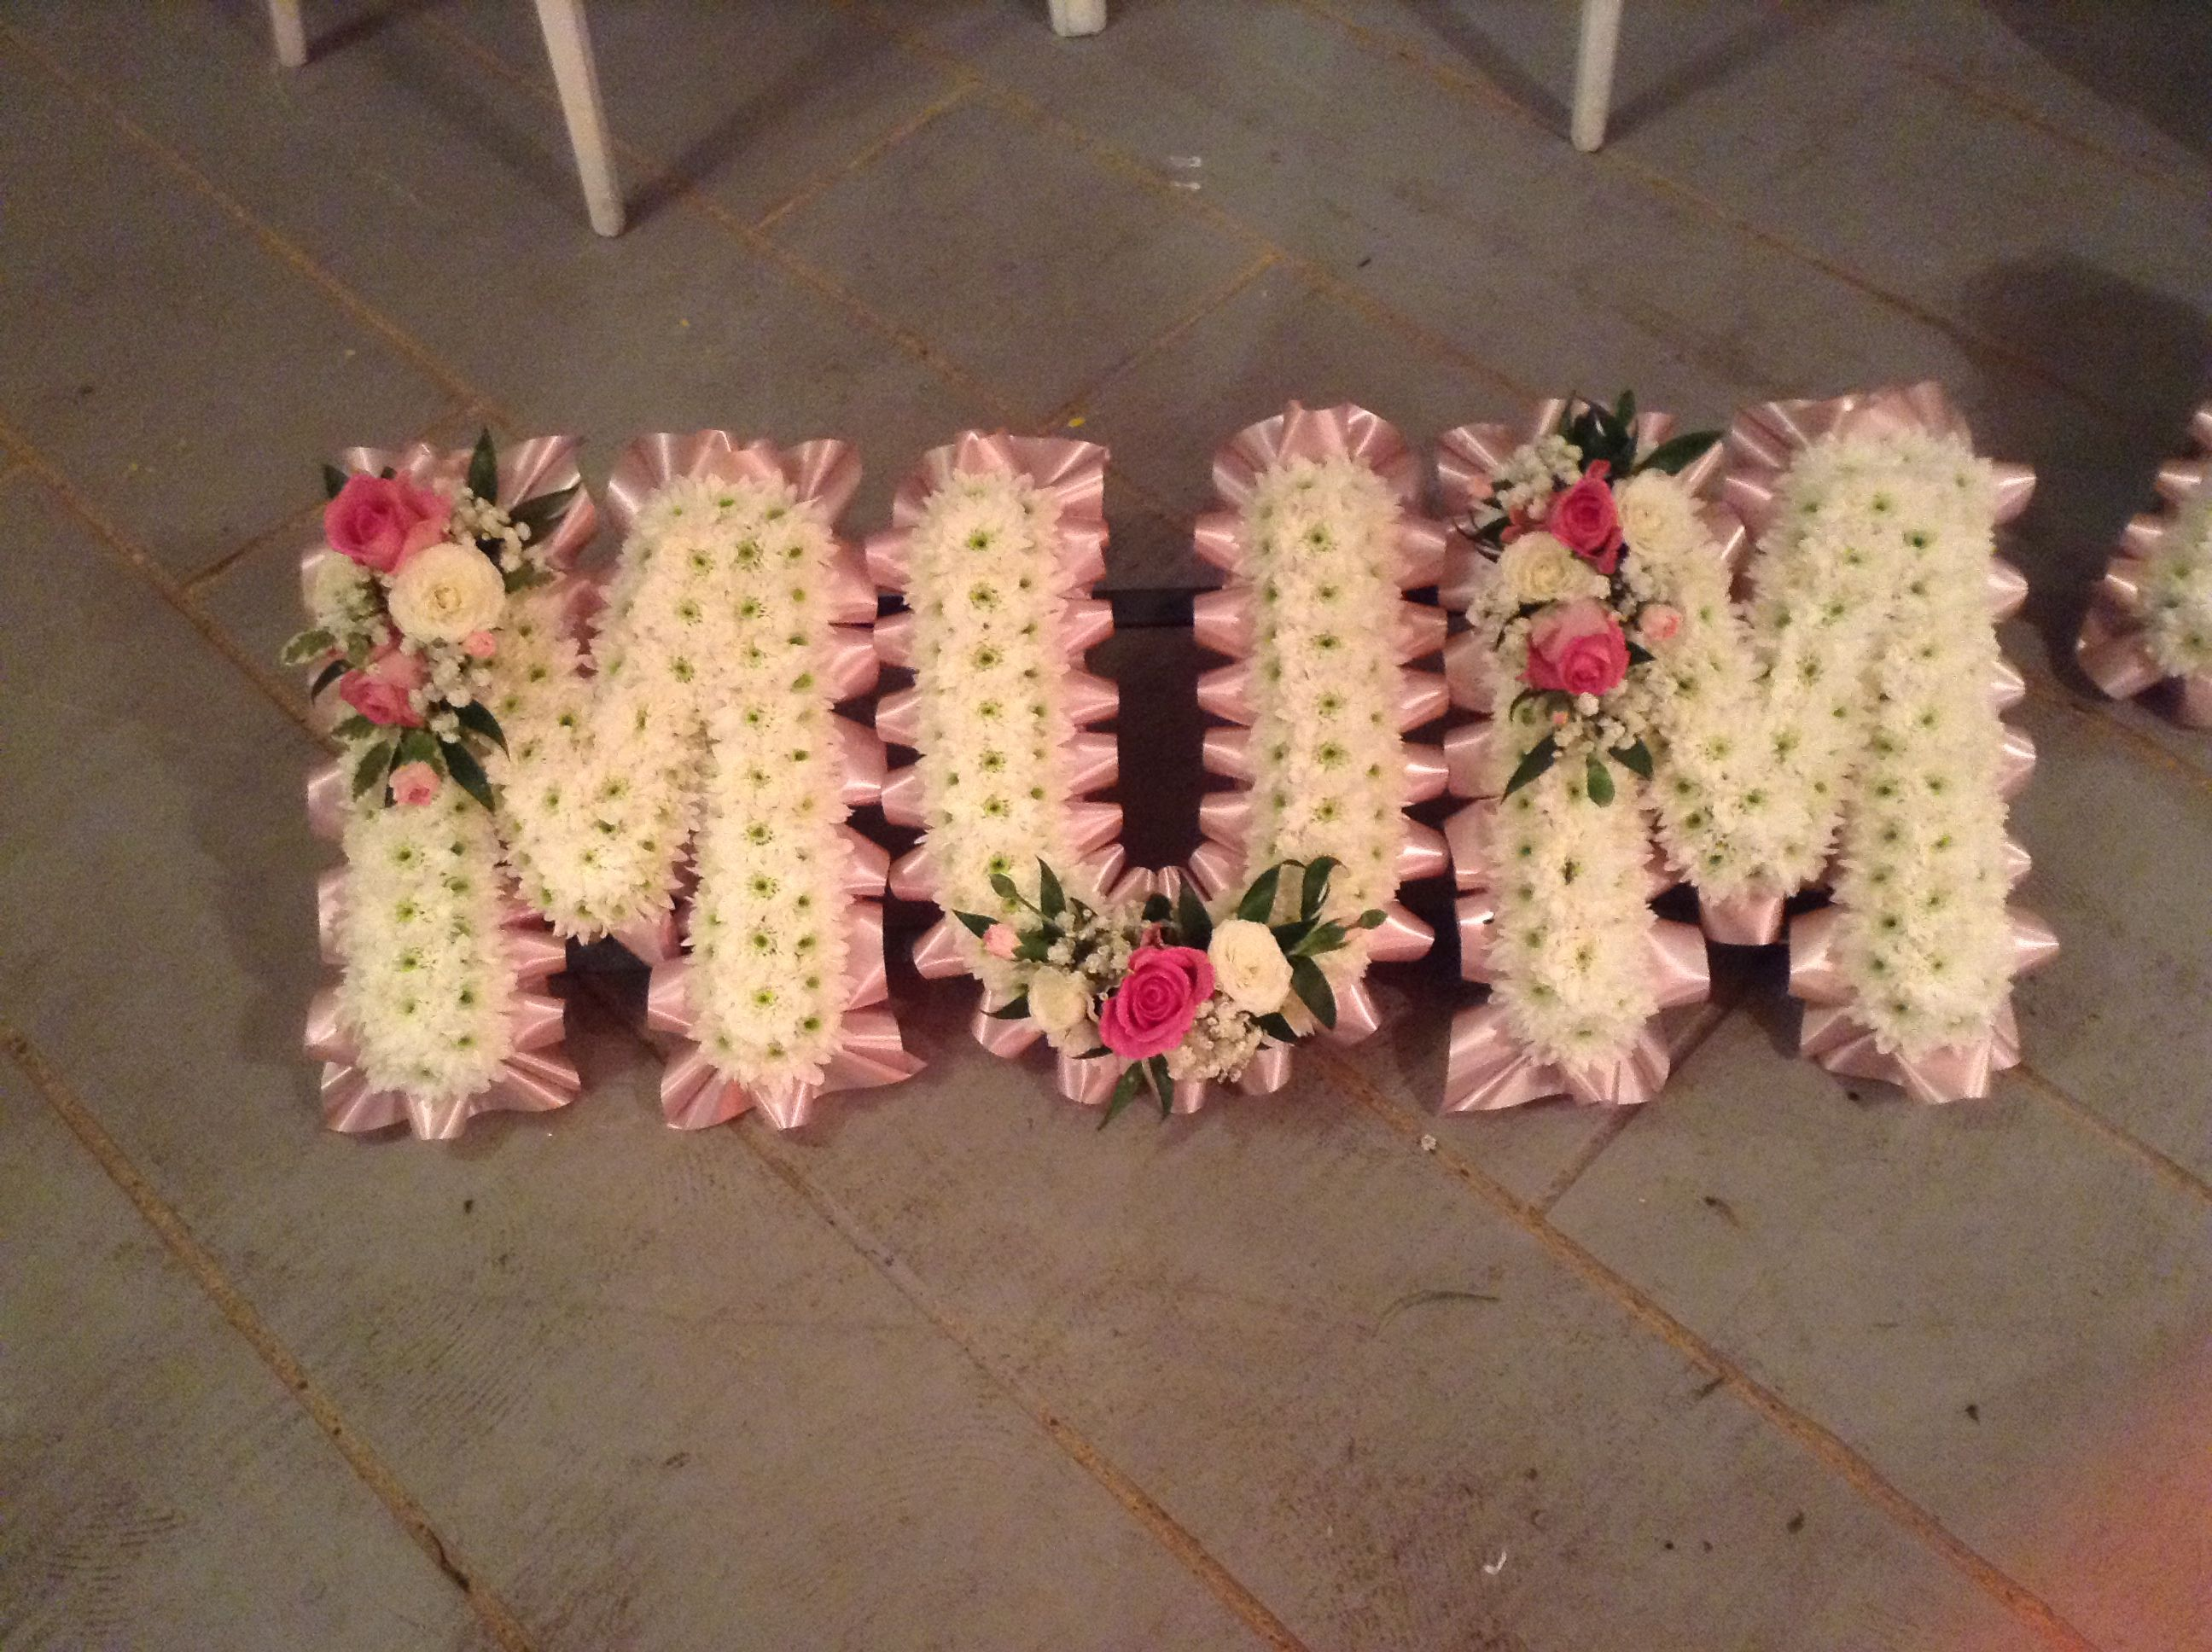 Funeral Flowers Mum Funeral Flower Tribute Baby Pink Ribbon White